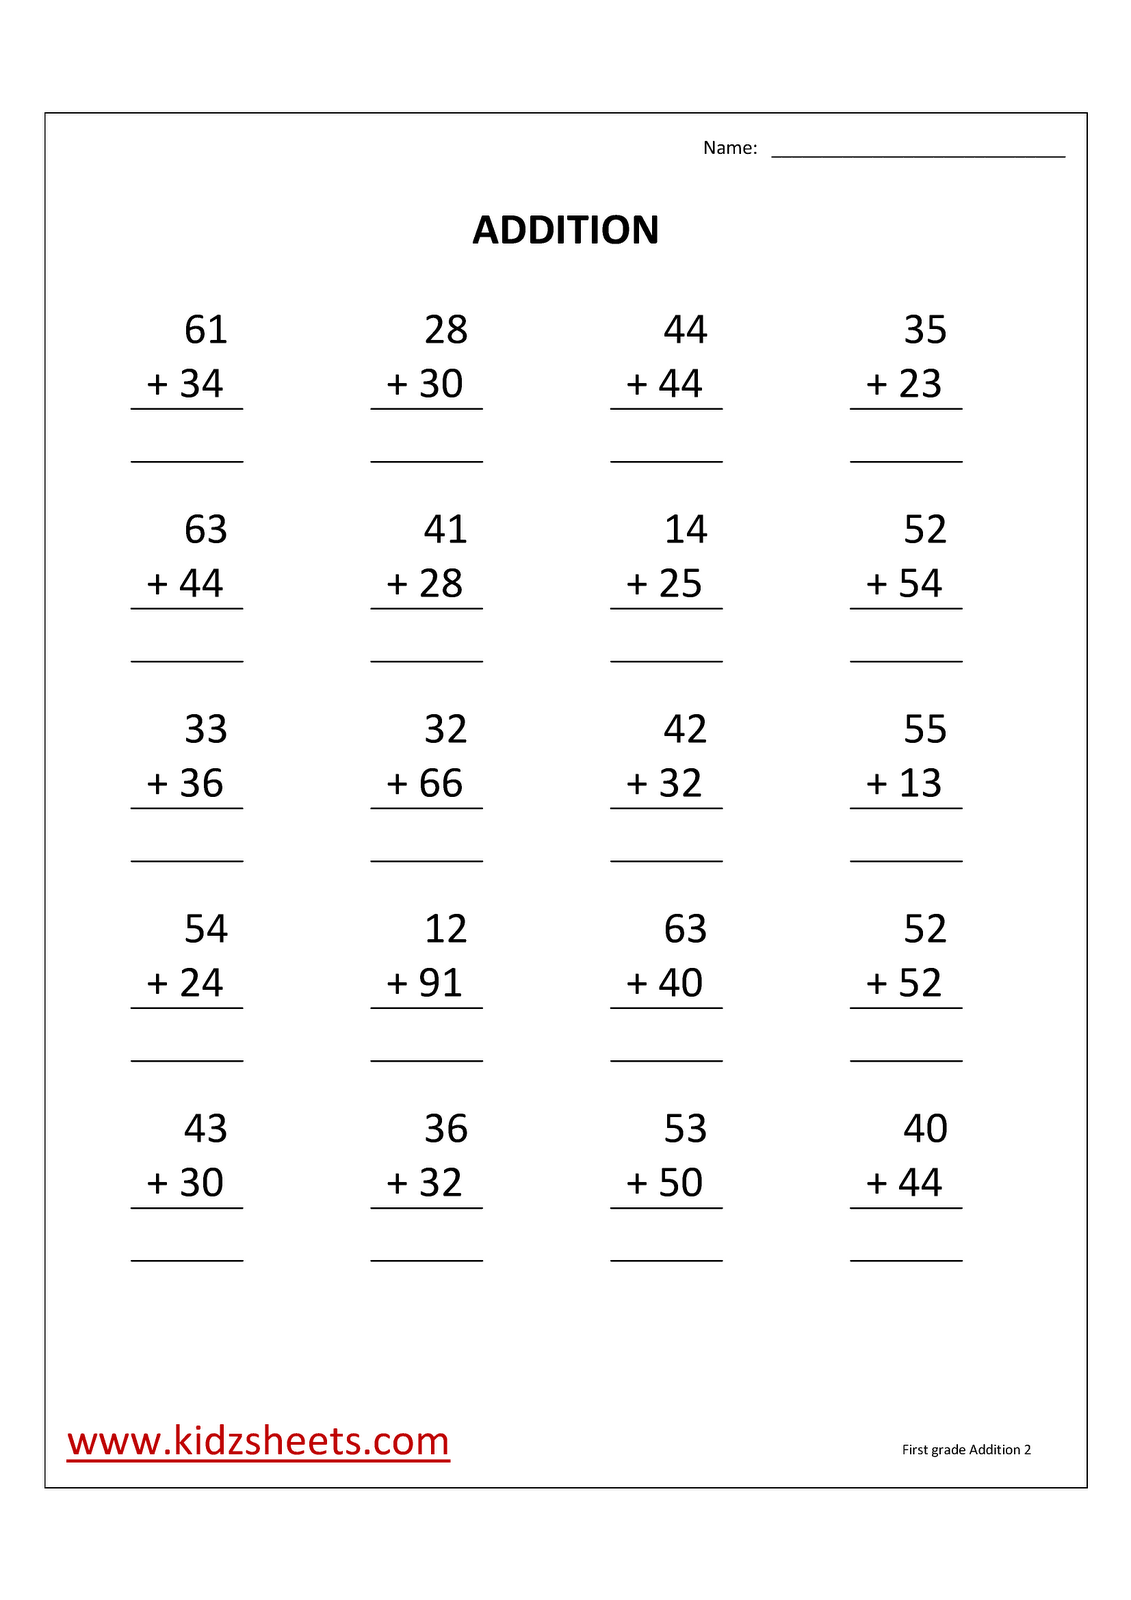 Kidz Worksheets First Grade Addition Worksheet2